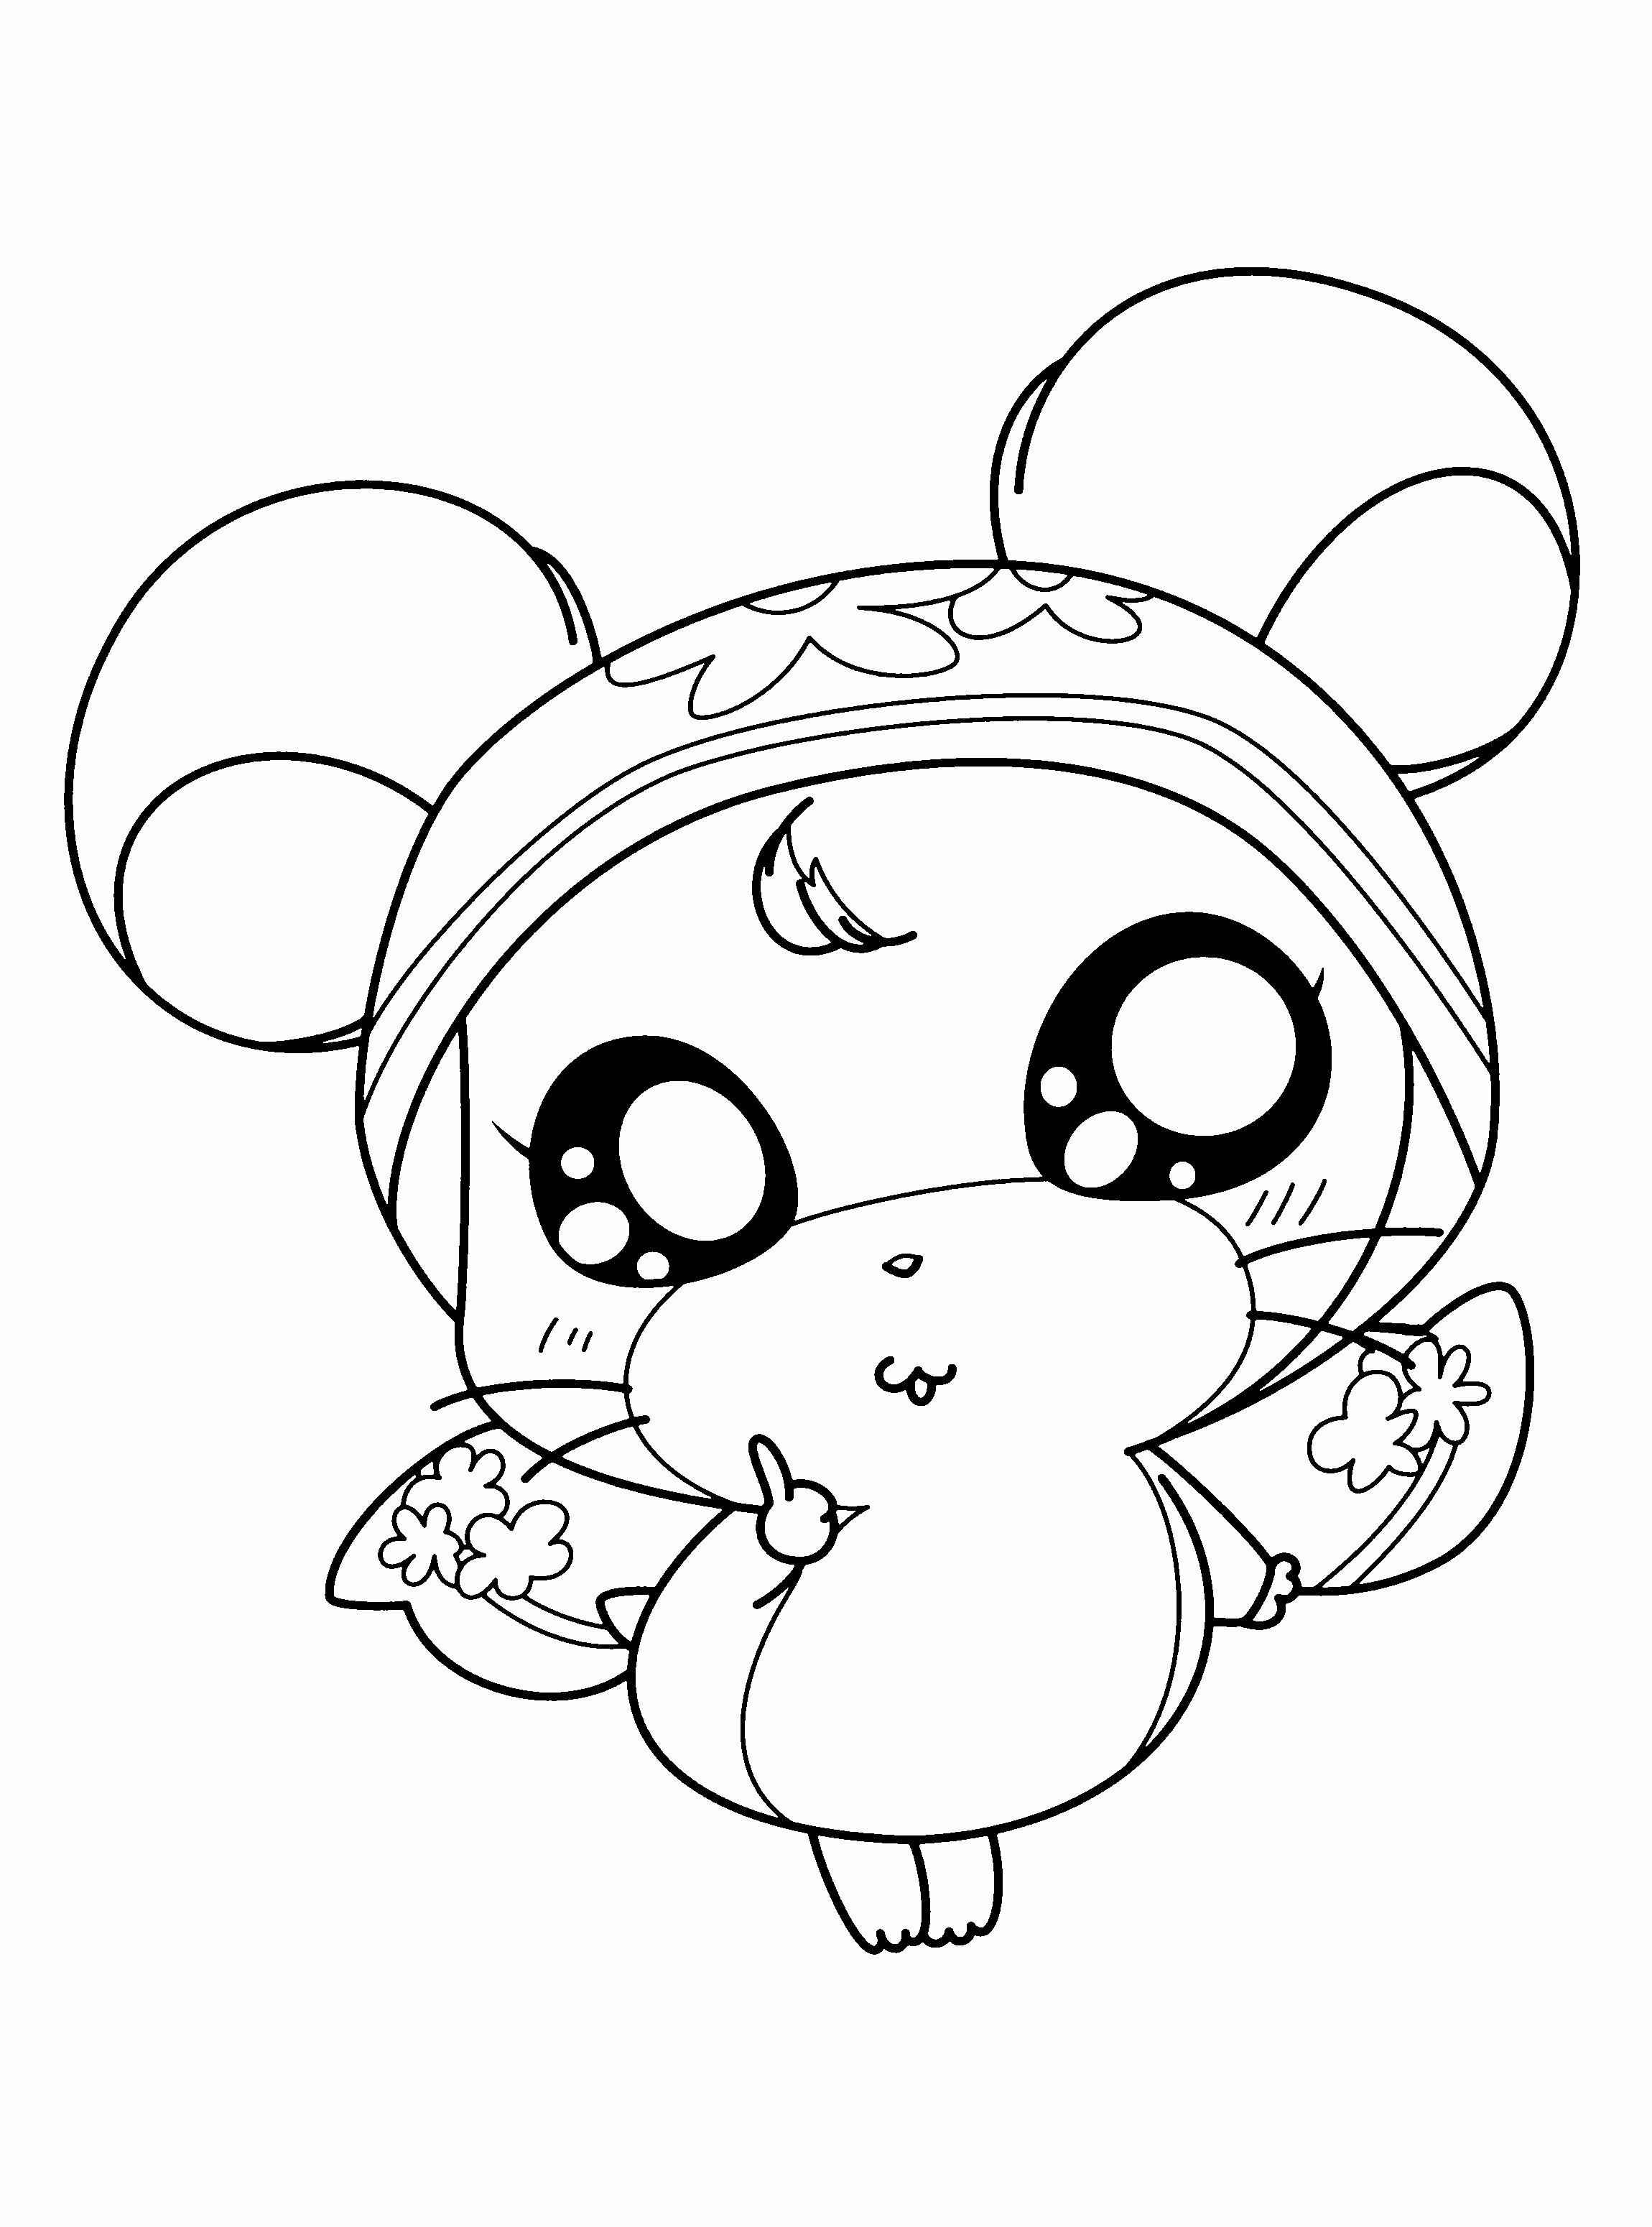 coloring pages you can print Collection-Fun Coloring Pages for Kids Pokemon Coloring Pages Printable Fresh Coloring Printables 0d – Fun 8-o